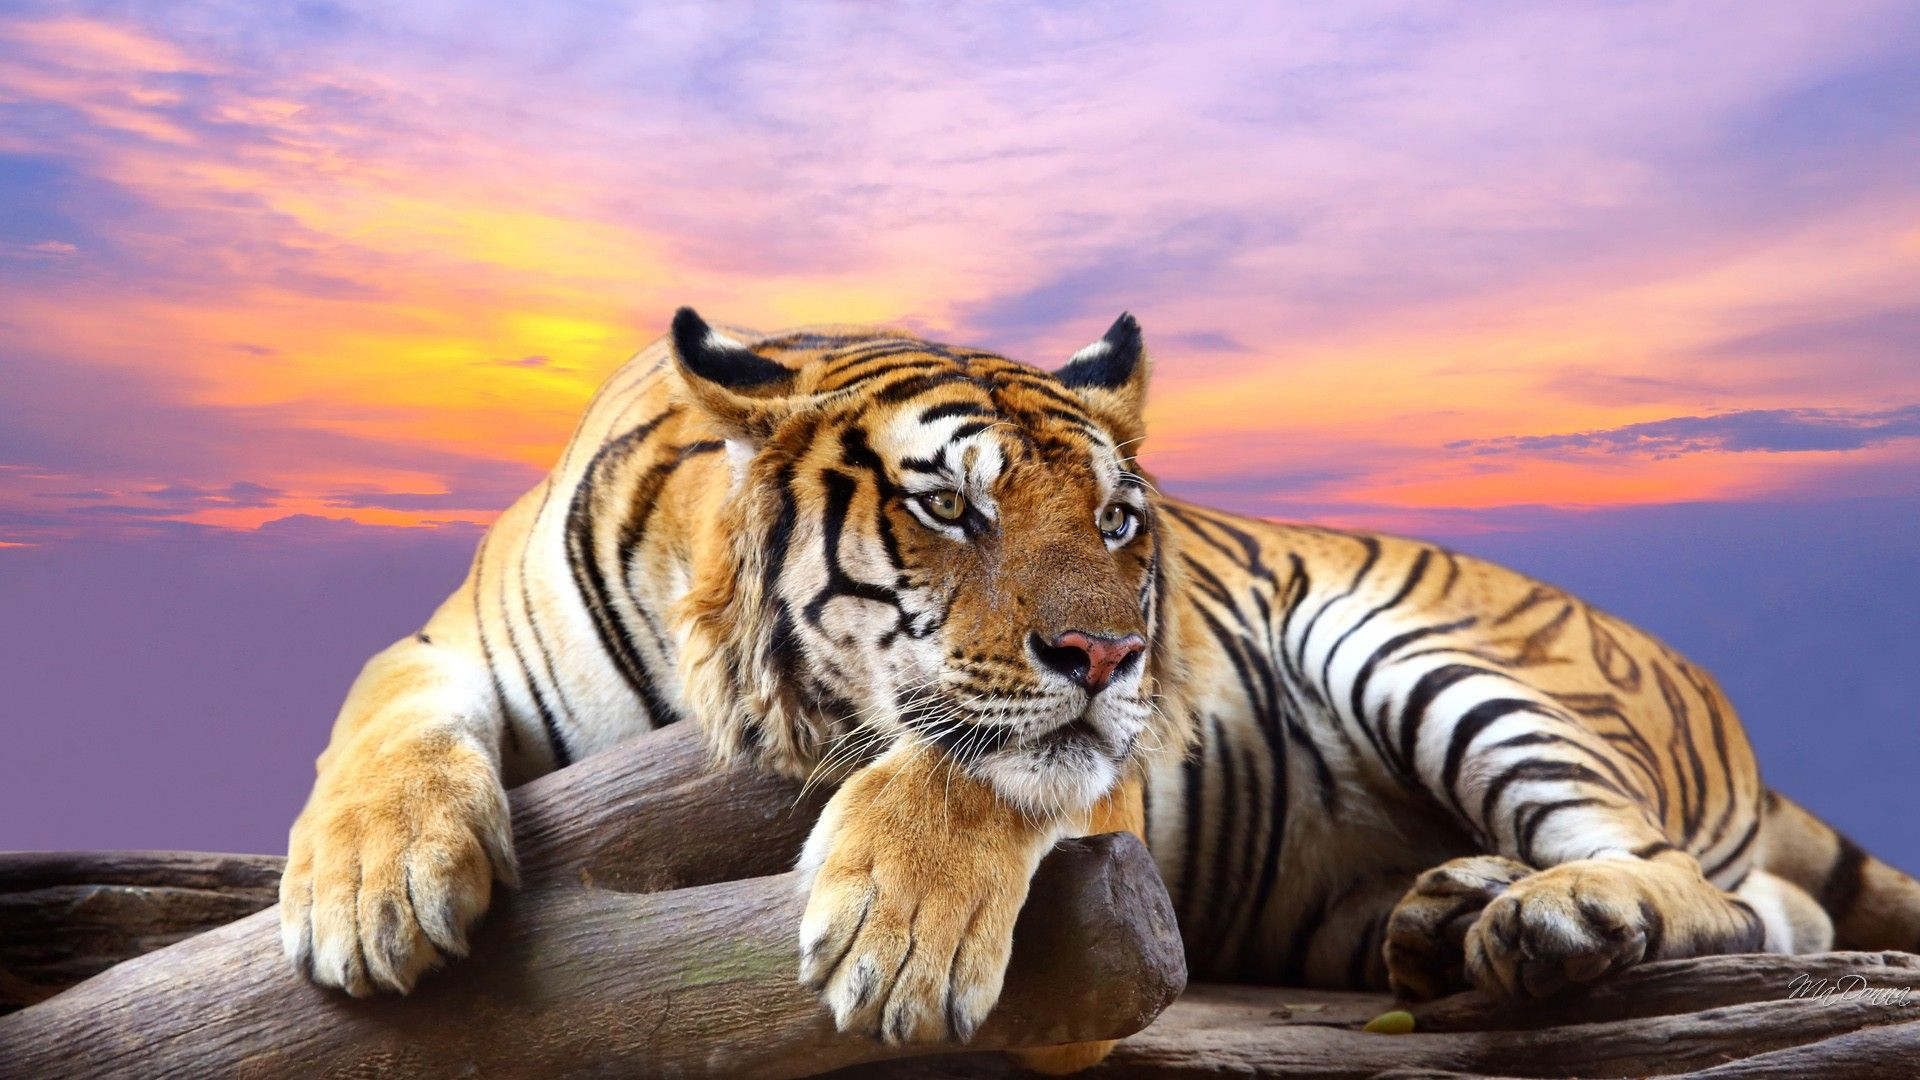 Tiger Computer Wallpapers Desktop Backgrounds ID × Tiger rh